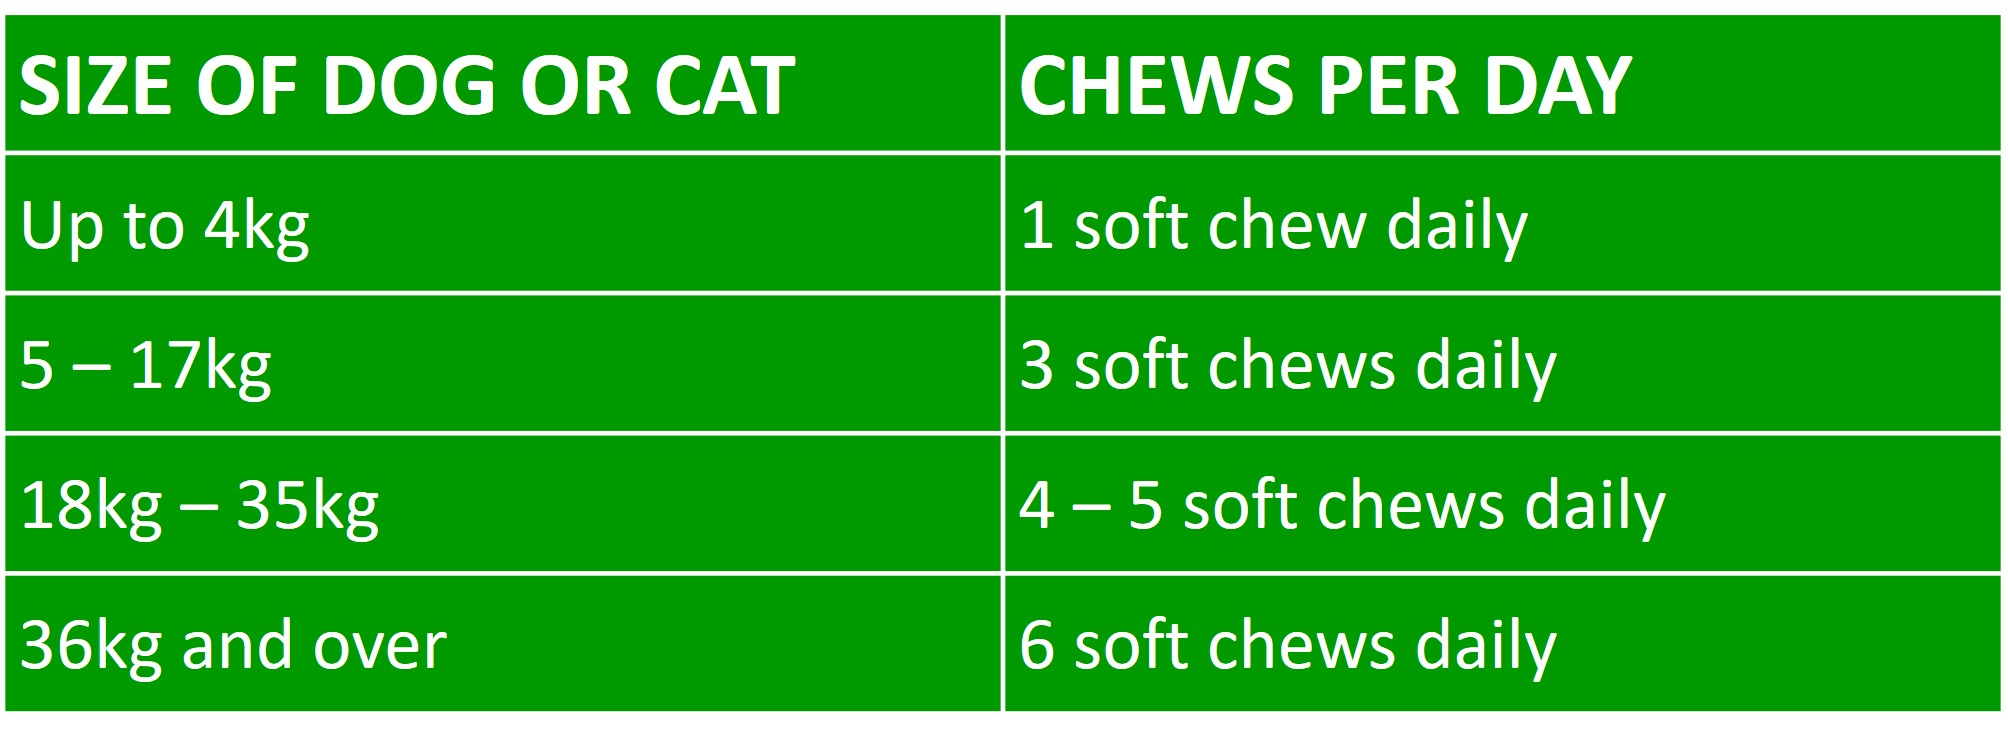 Joint care chews feeding guide